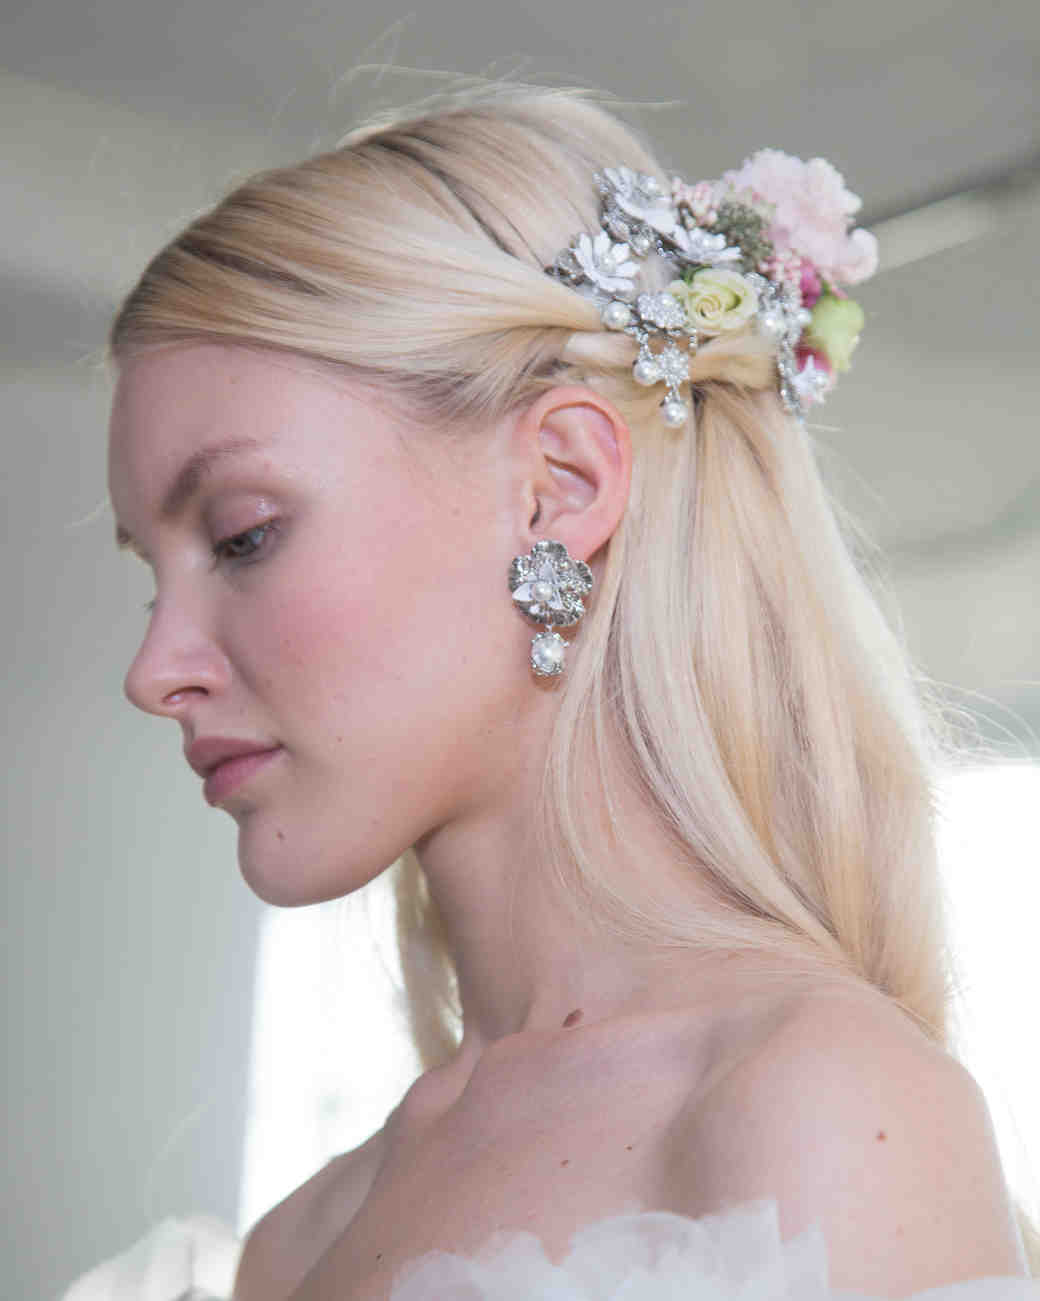 Bridal Fashion Week Hairstyles Guaranteed to Give You Major Wedding ...